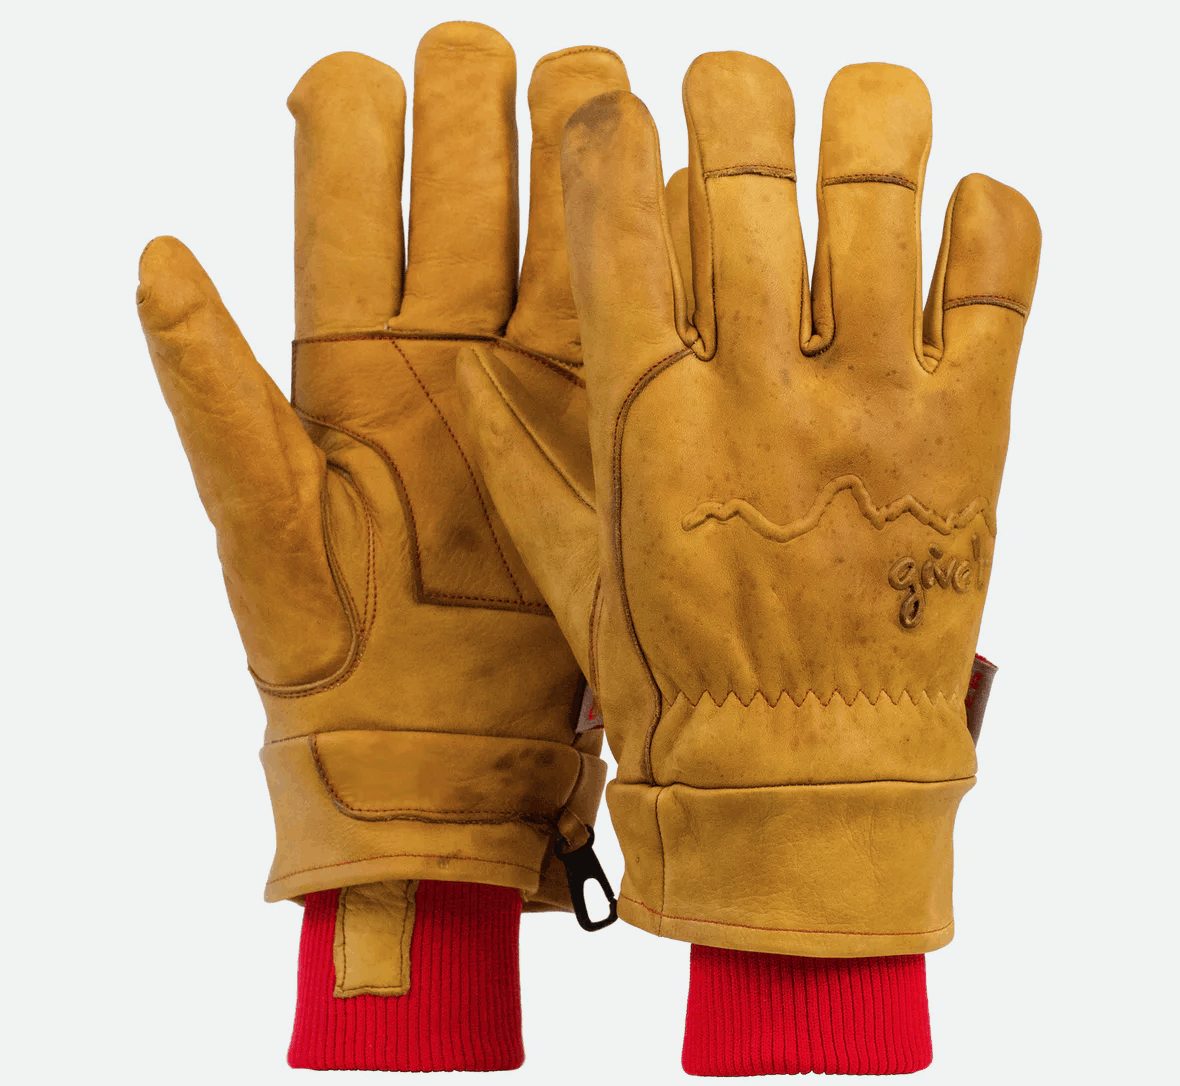 Give'r 4 Season Leather Gloves by Huckberry